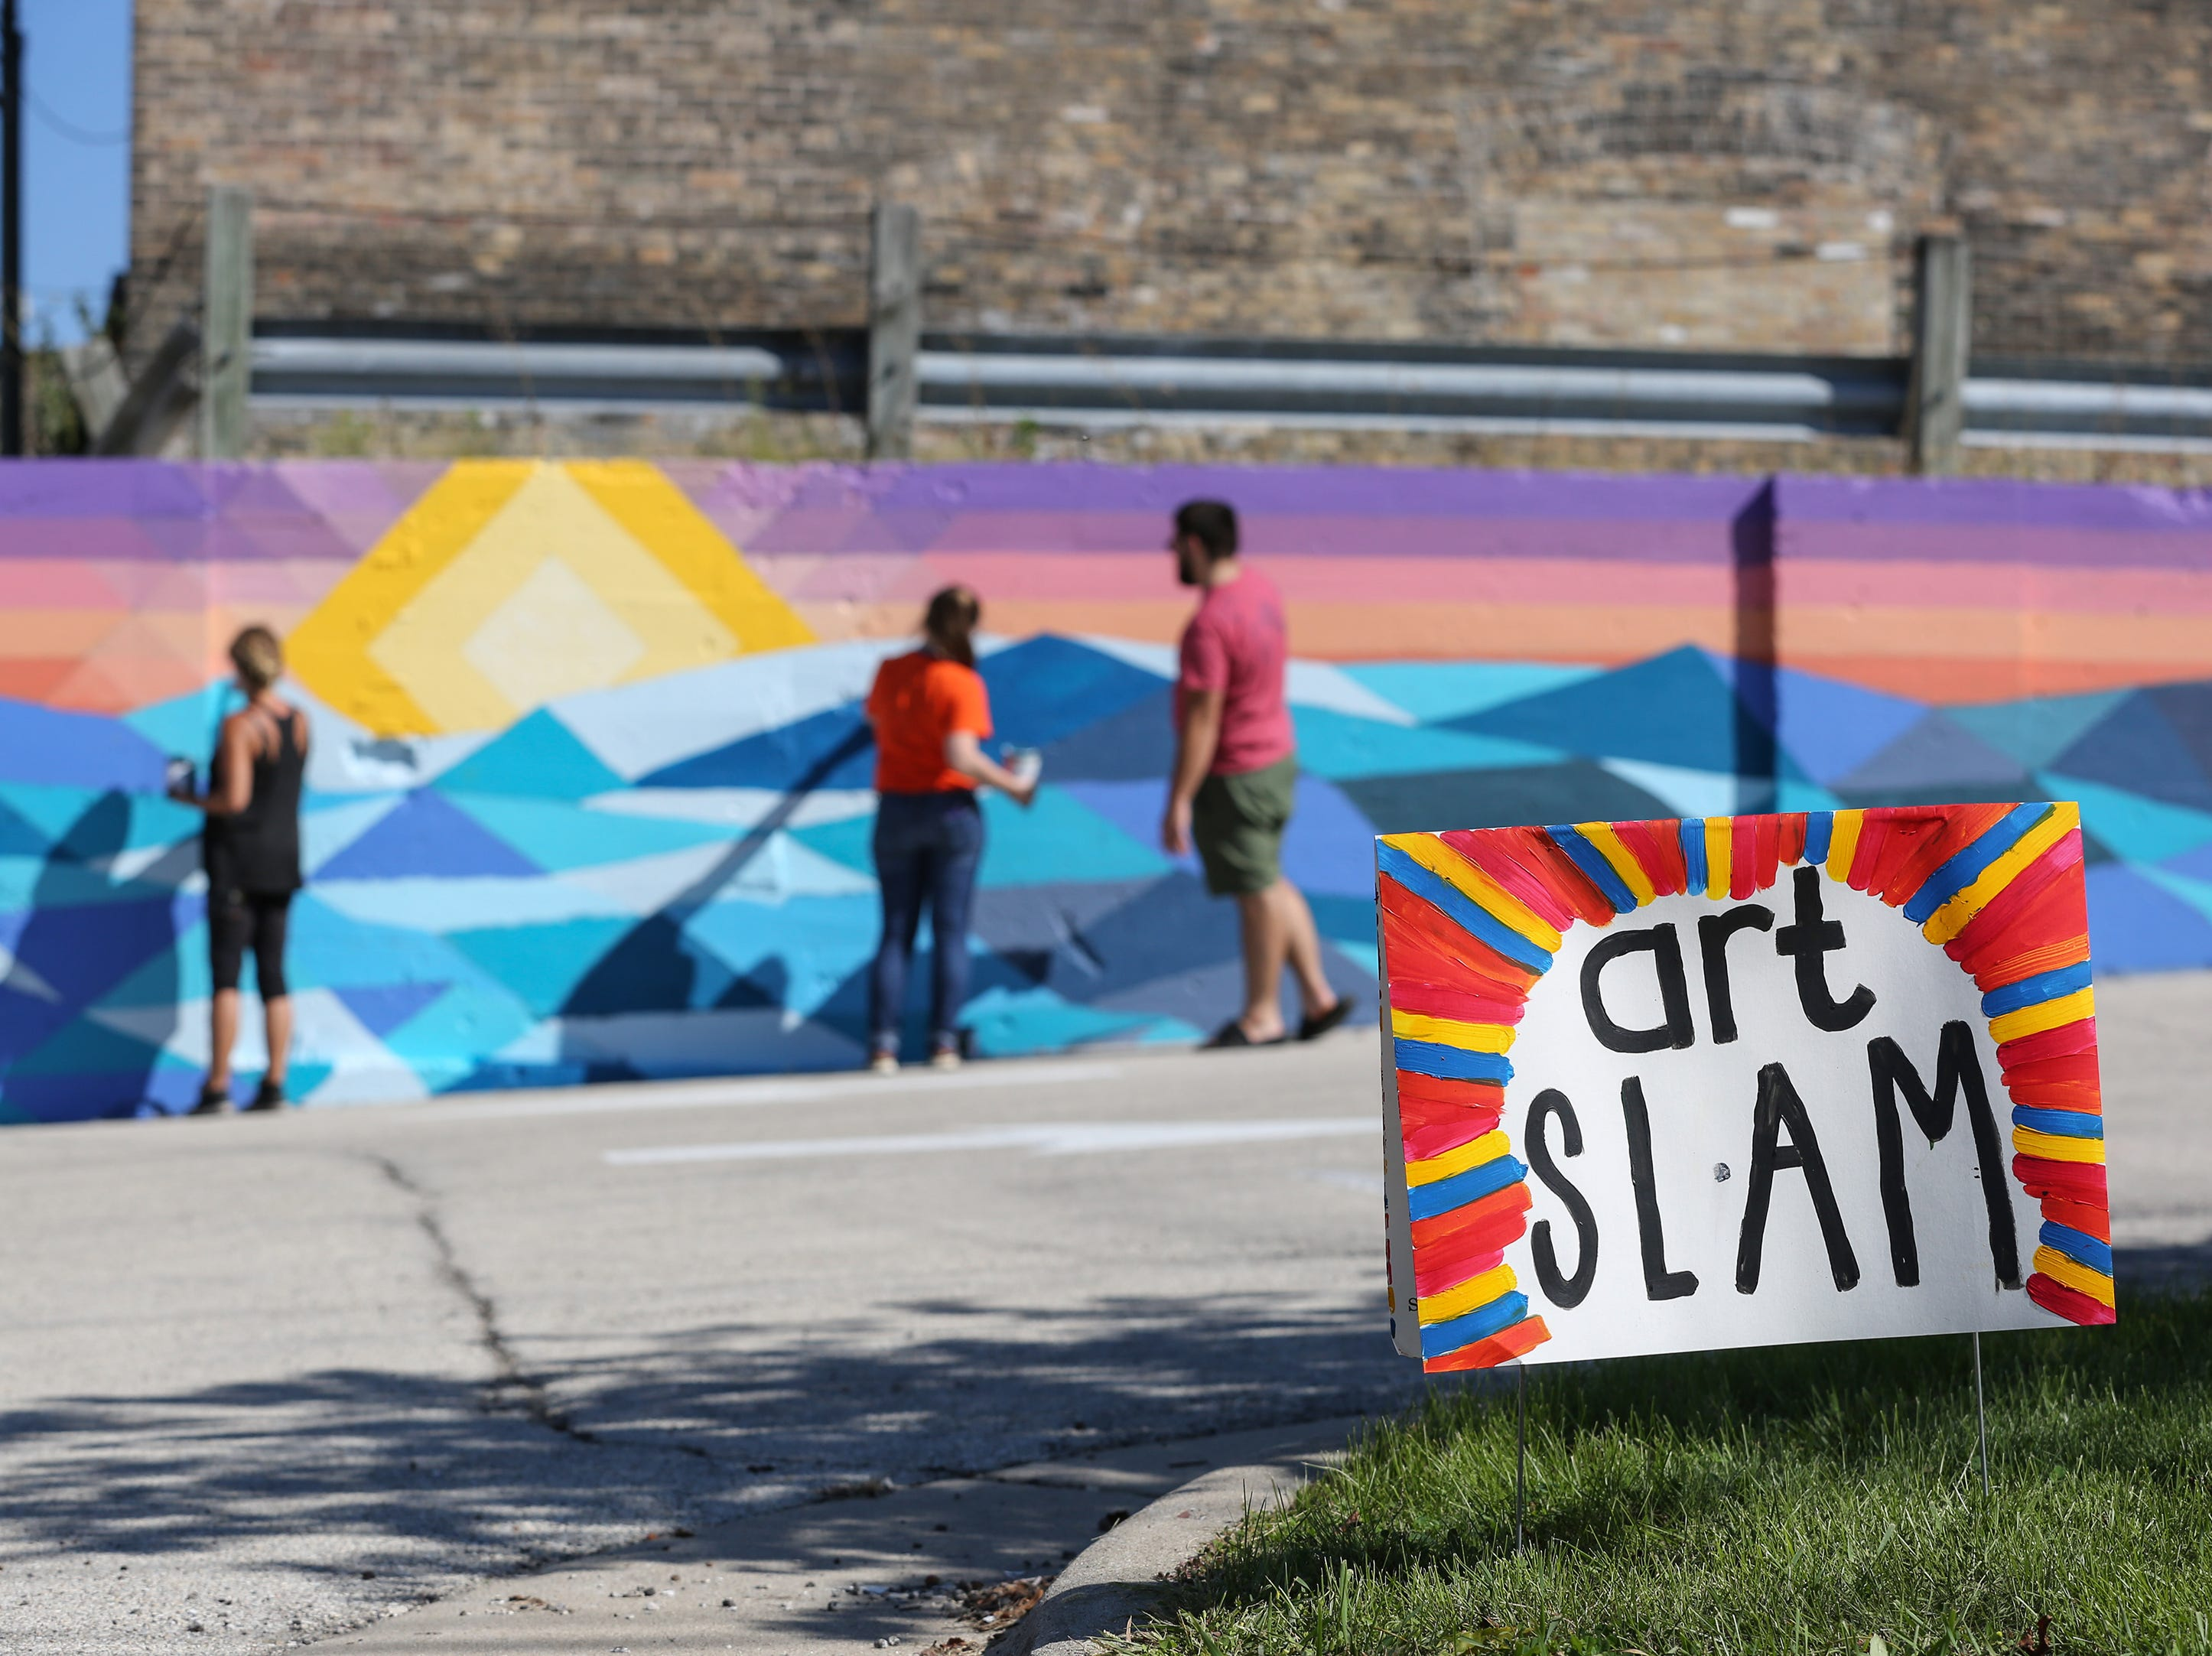 People work on the public mural project during Art Slam Saturday, September 15, 2018, in Manitowoc, Wis. The public was invited to fill in a square of the paint-by-numbers mural at 9th and Jay Street. Josh Clark/USA TODAY NETWORK-Wisconsin